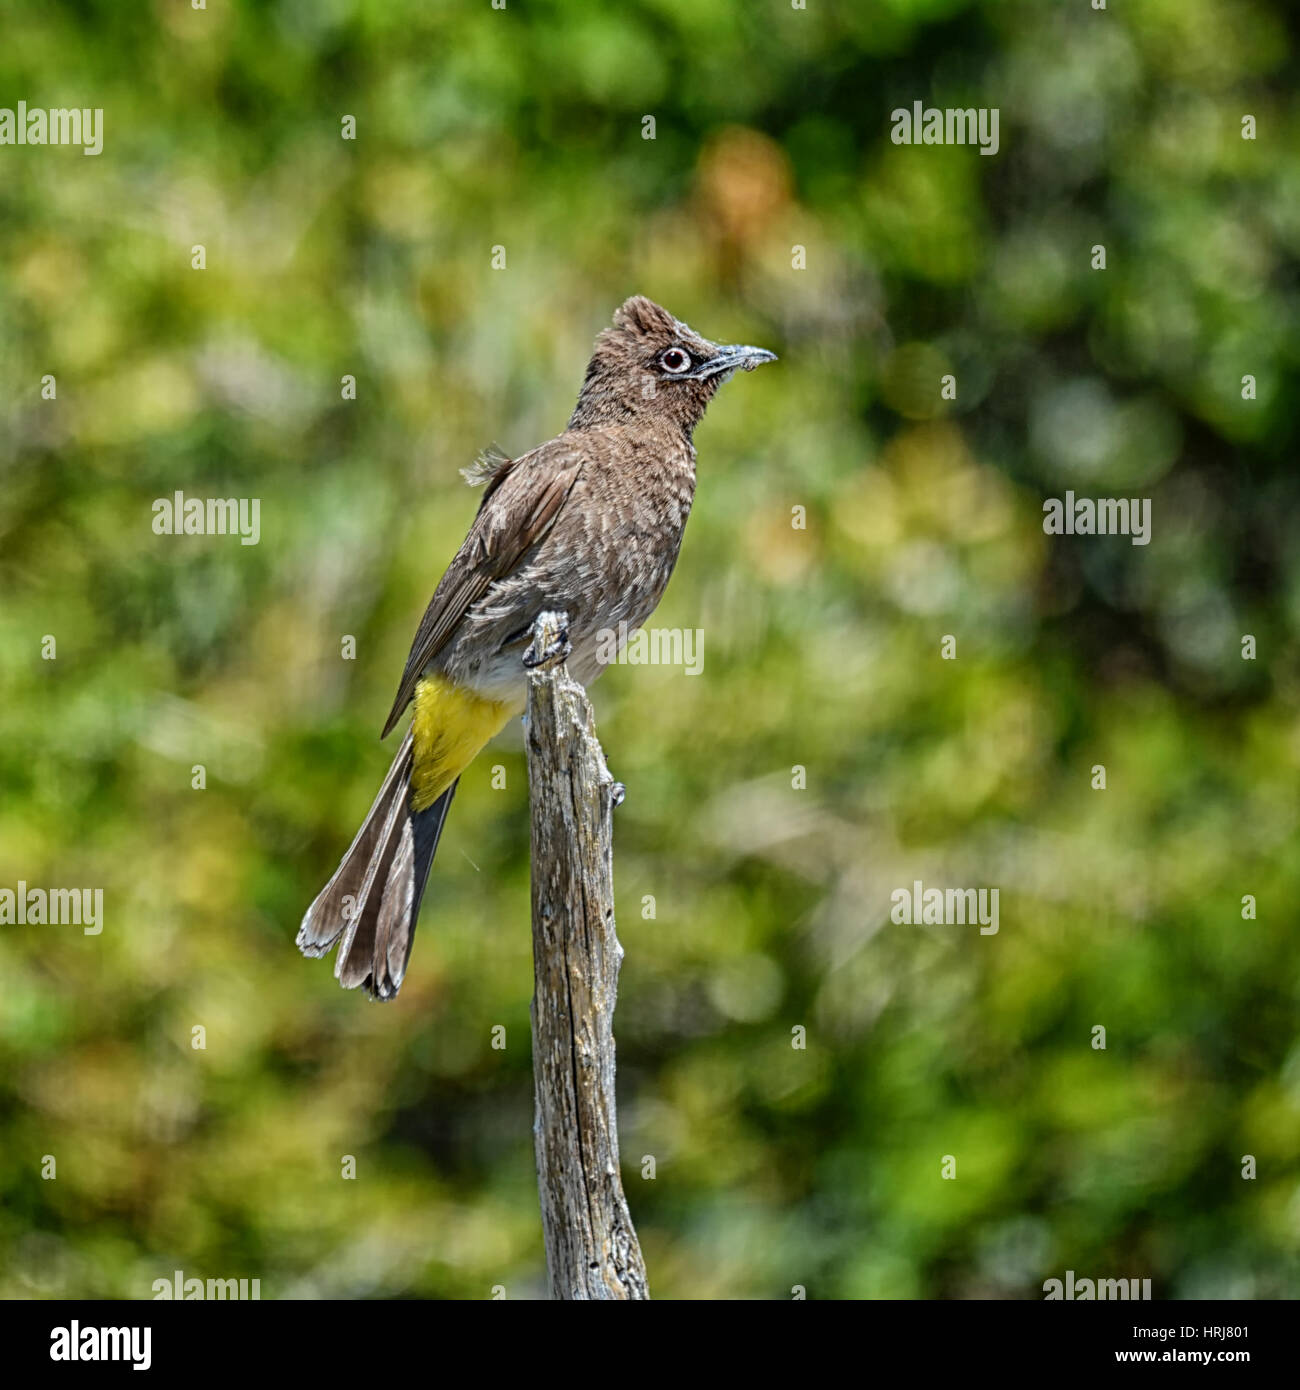 A Cape Bulbul bird perched on a branch in Southern Africa Stock Photo